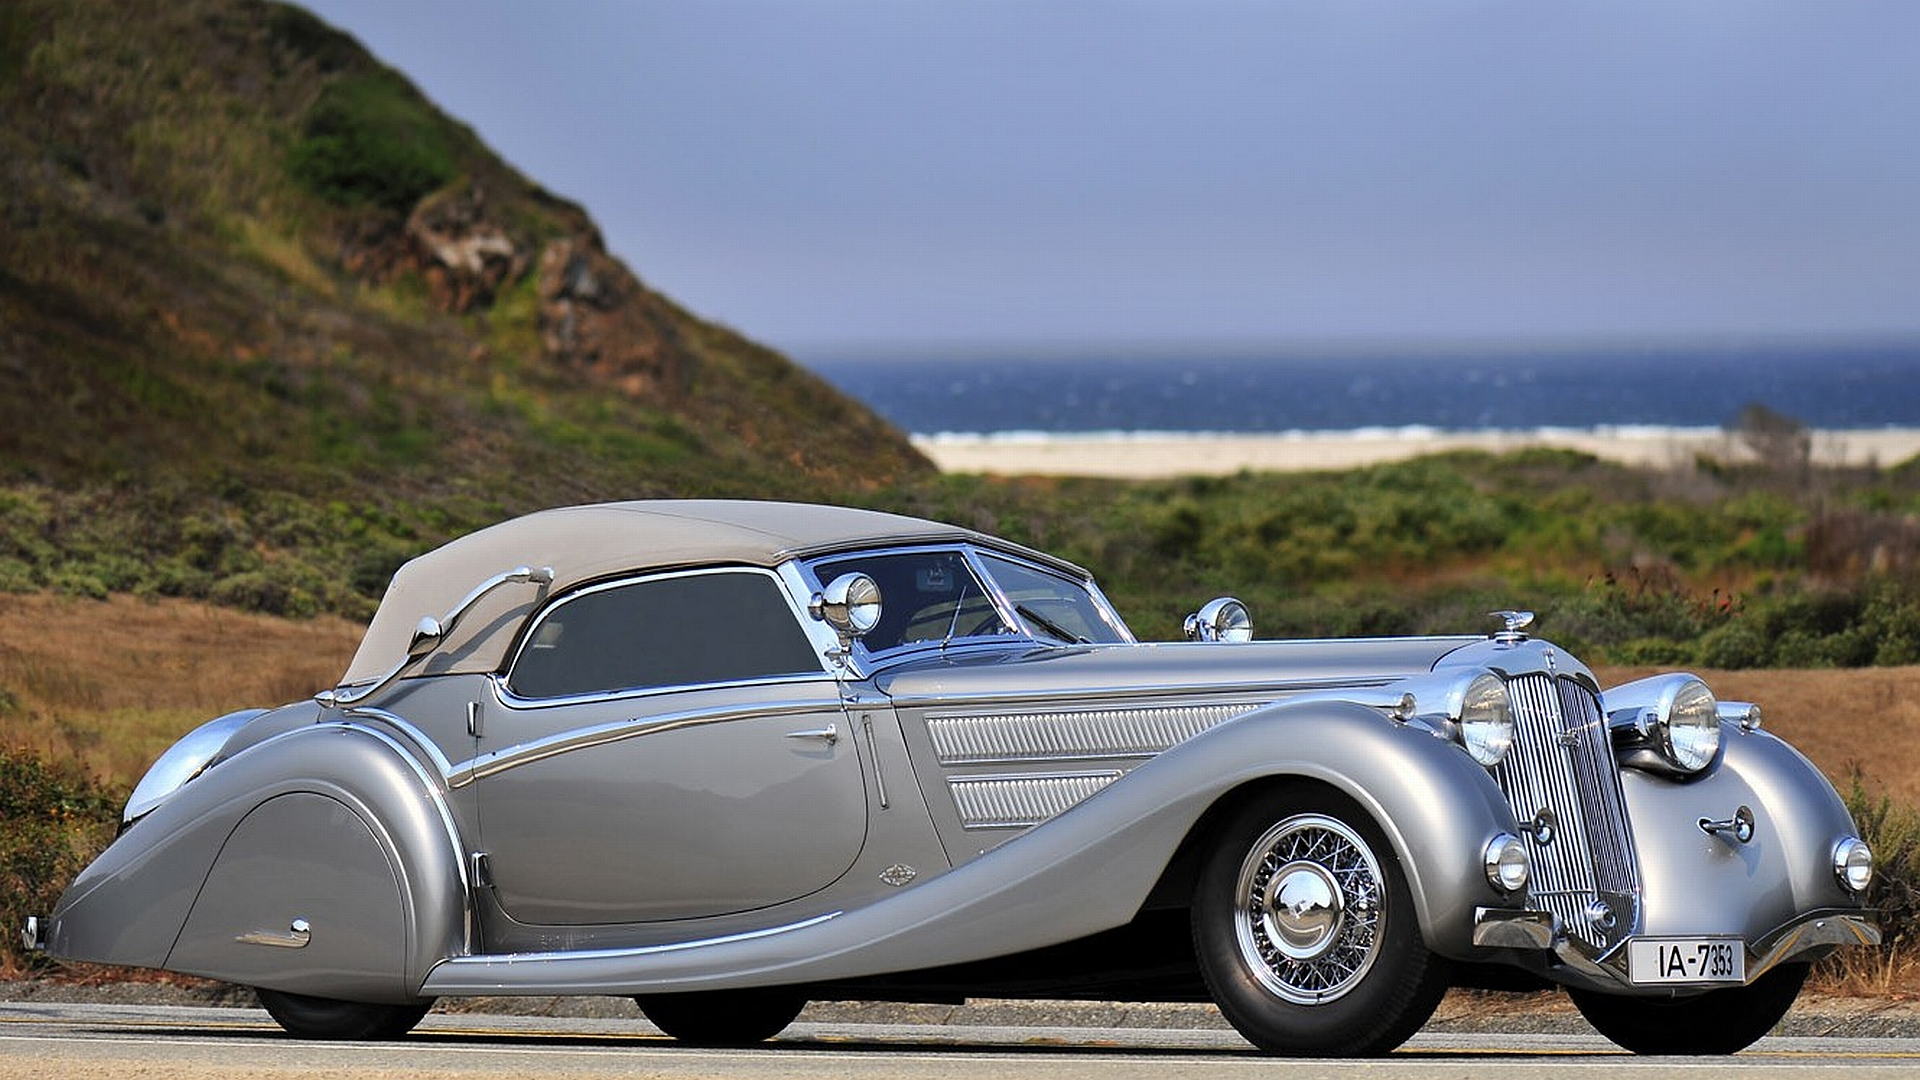 1937 Horsch 853 Sport Cabriolet Full HD Wallpaper And Background Image